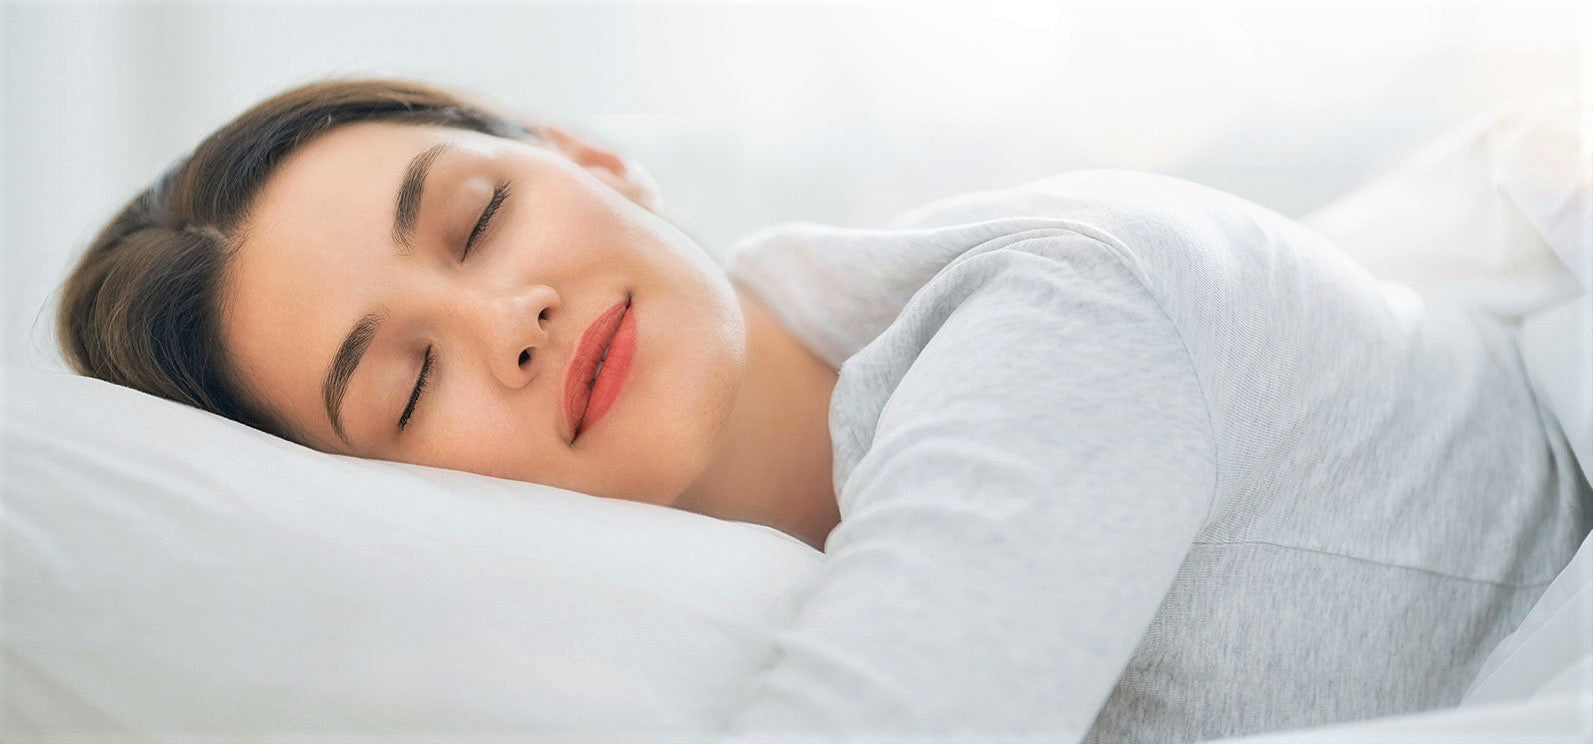 woman sleeps peacefully in bed while hugging pillow